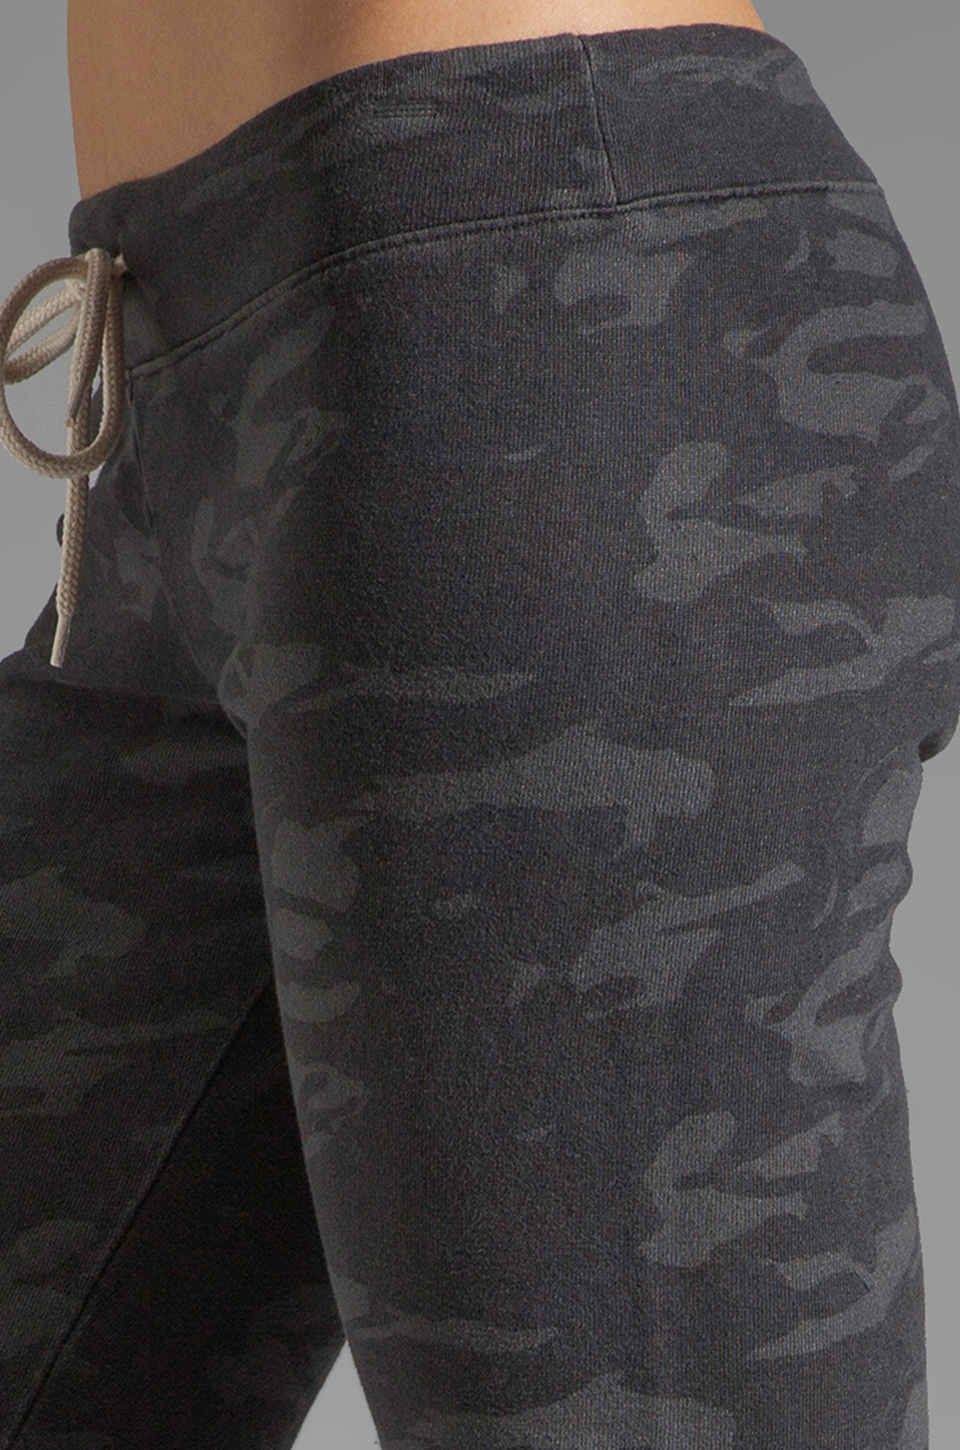 MONROW Camo Print Vintage Sweats in Vintage Black